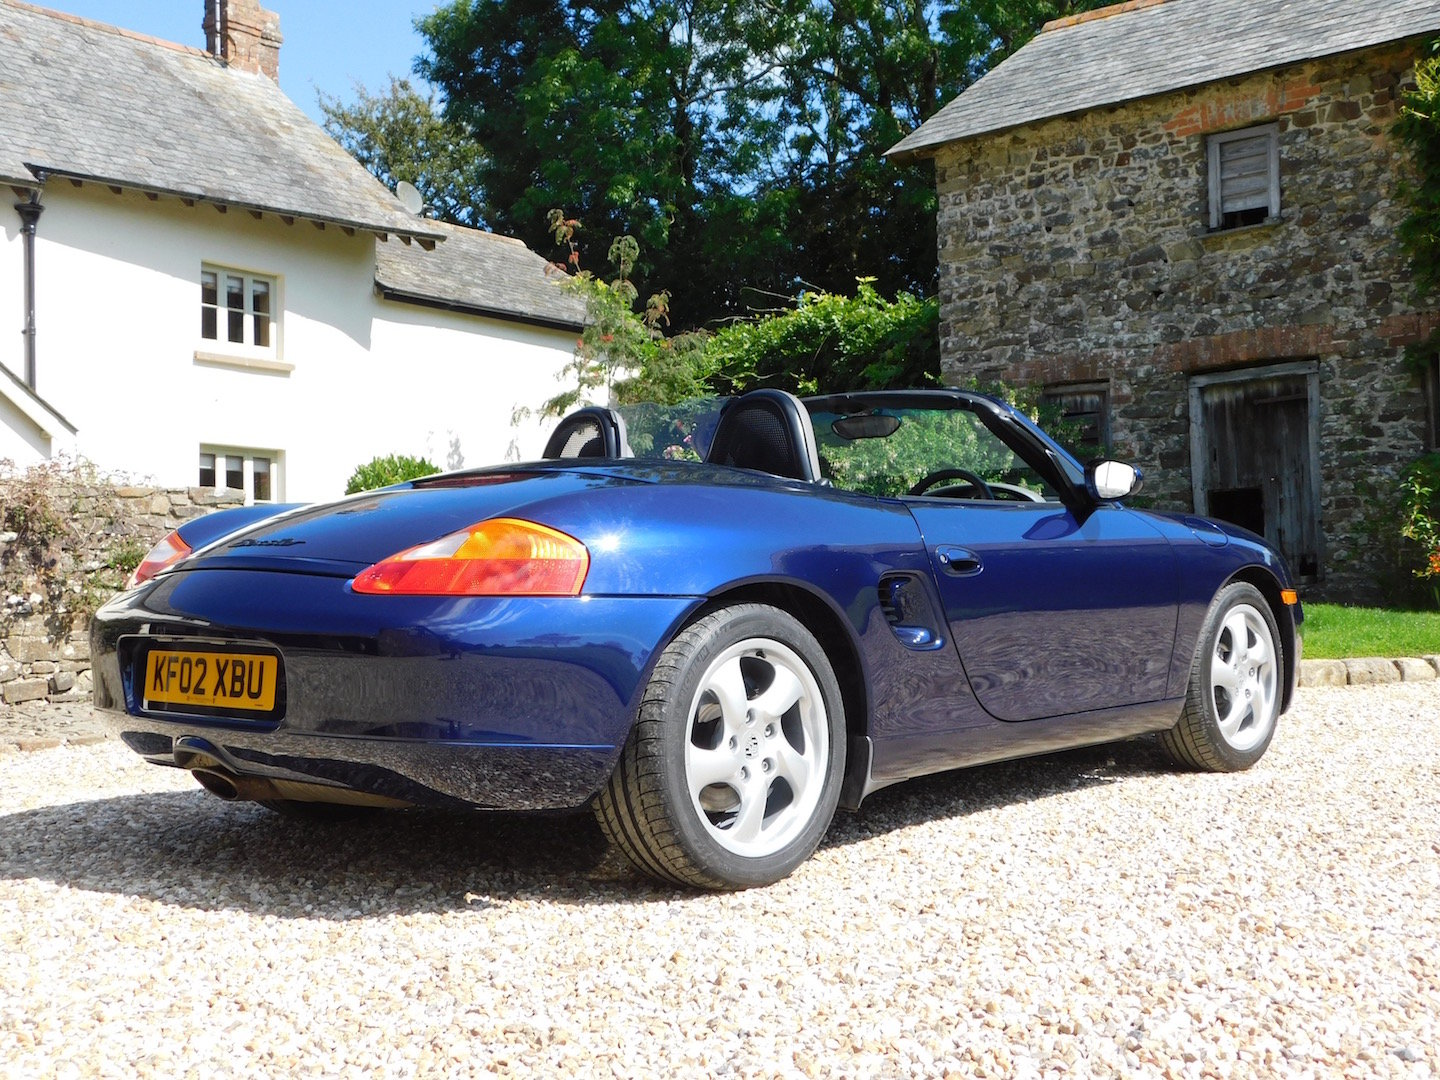 2002 Porsche 986 Boxster 2.7 - 35k miles, 1 owner from new For Sale (picture 2 of 6)